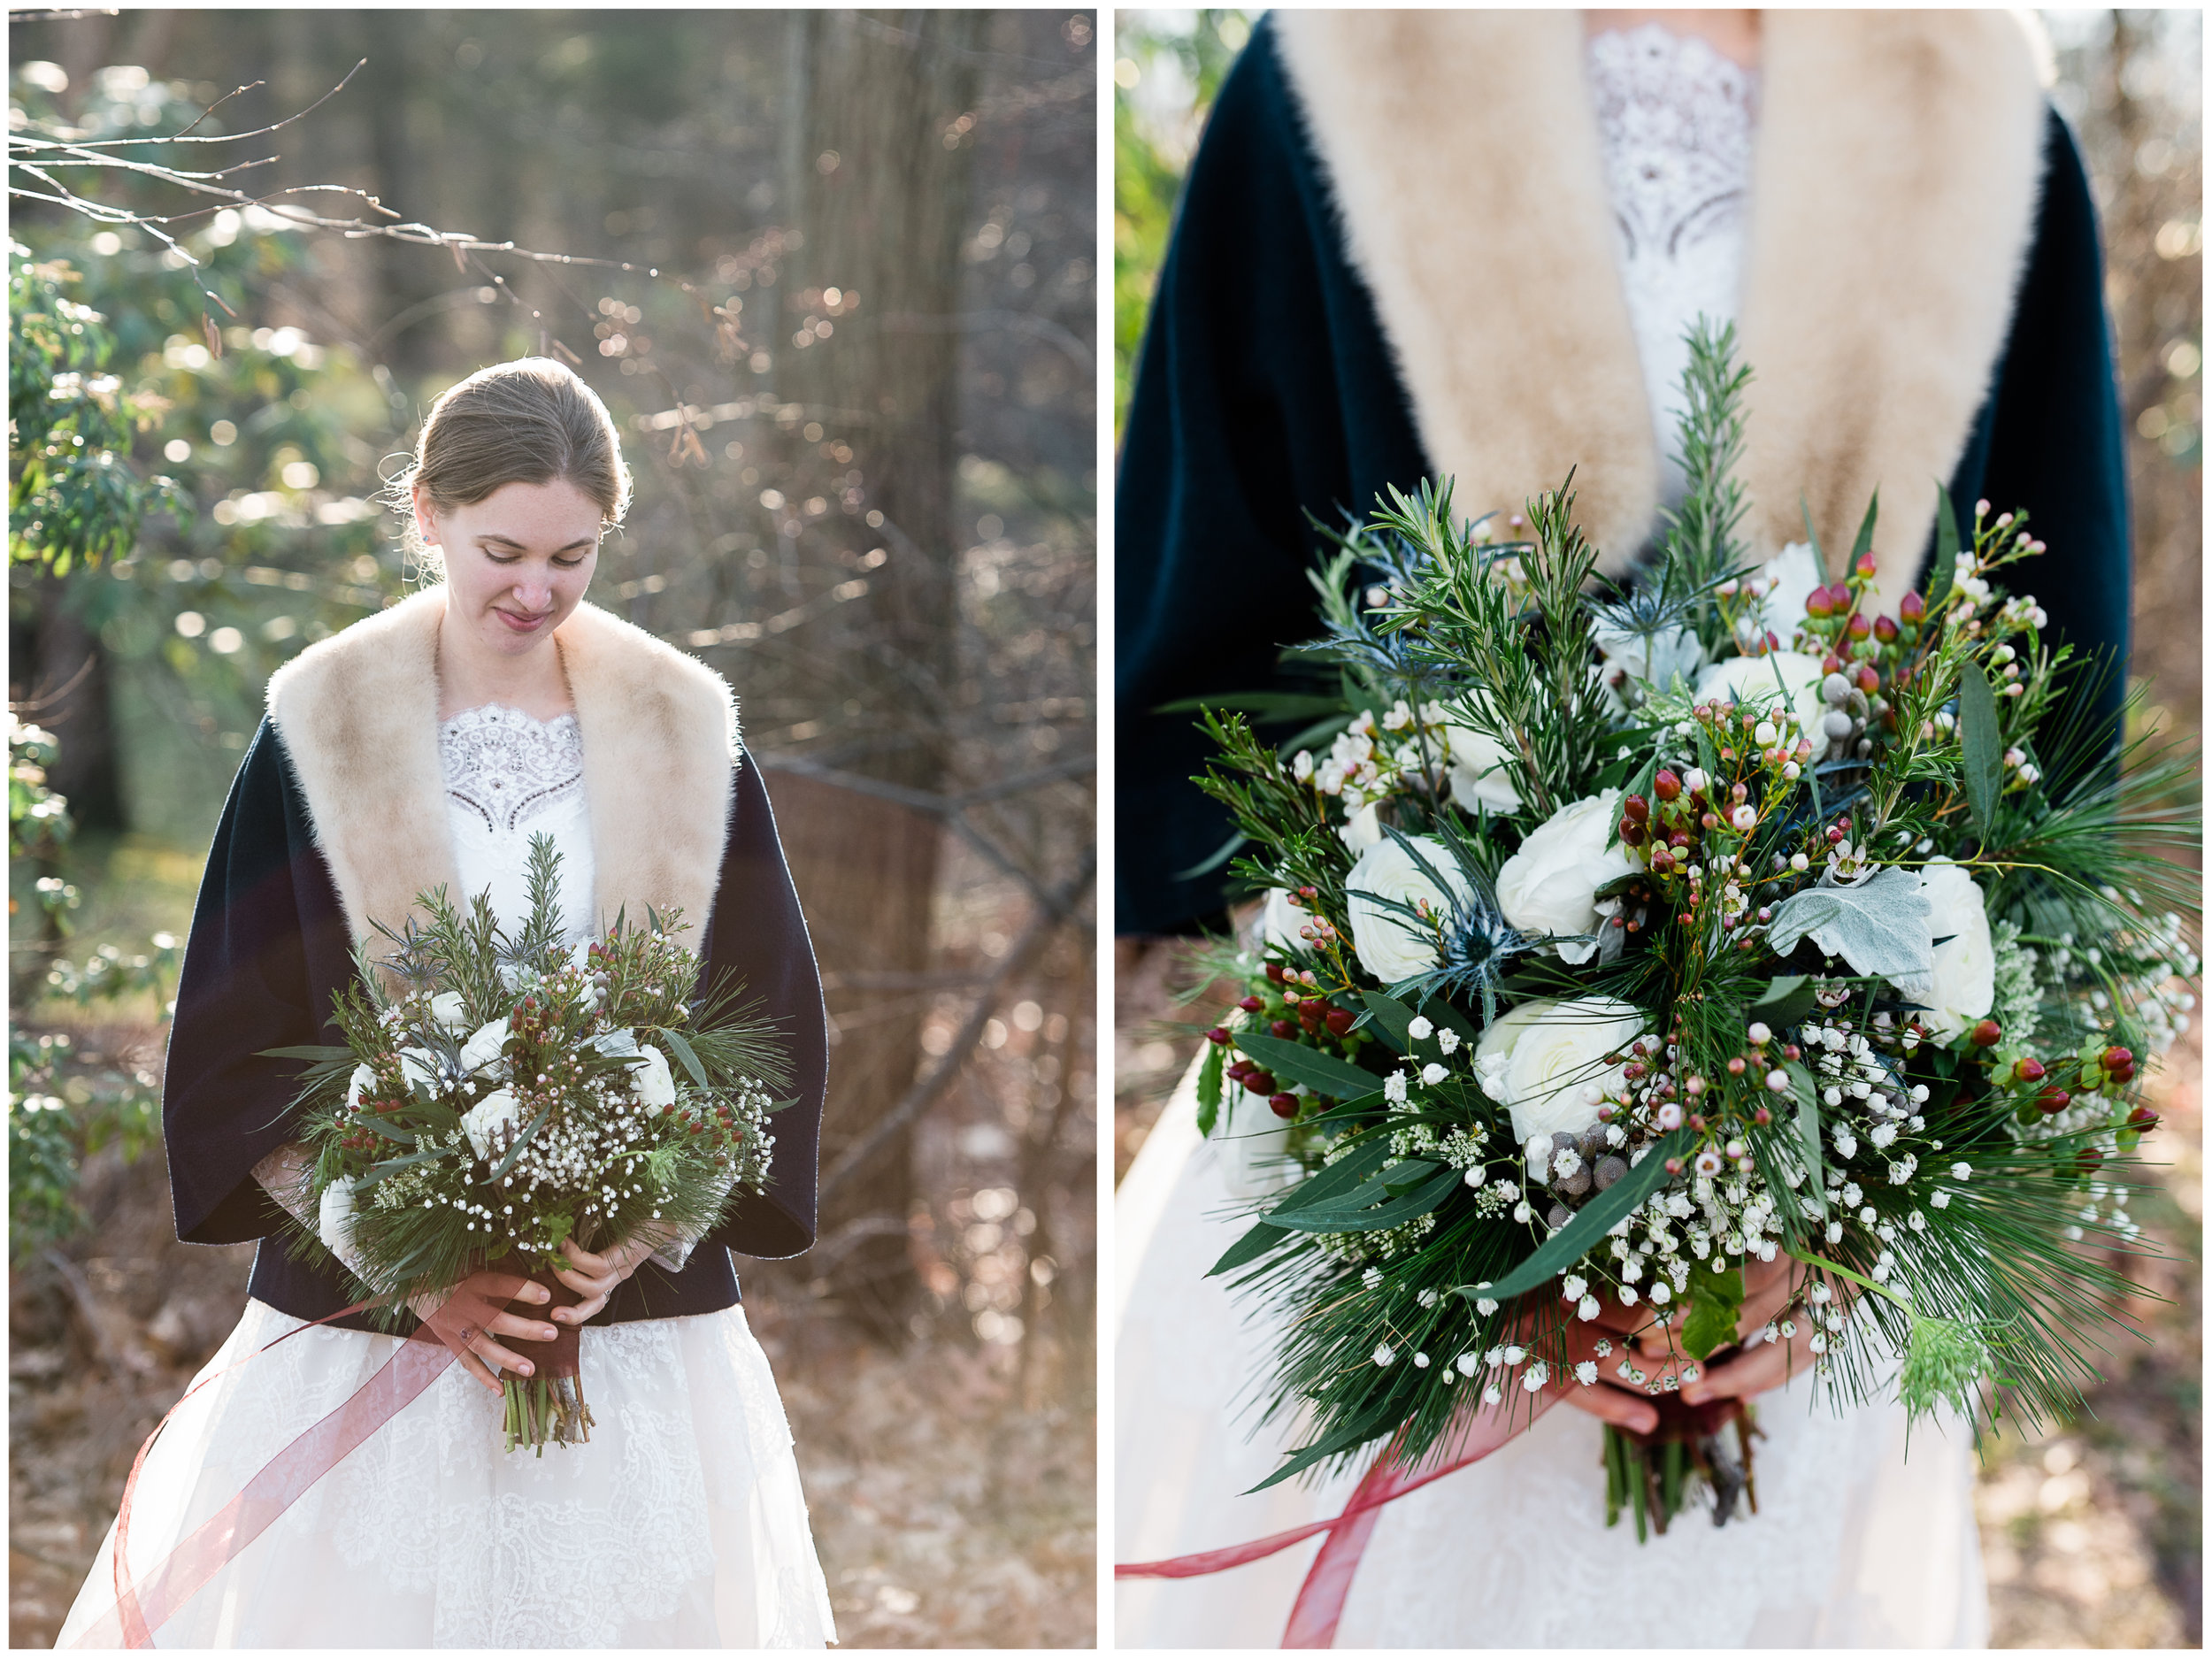 Bridal Portraits, Ligonier Wedding Photographer, Mariah Fisher.jpg